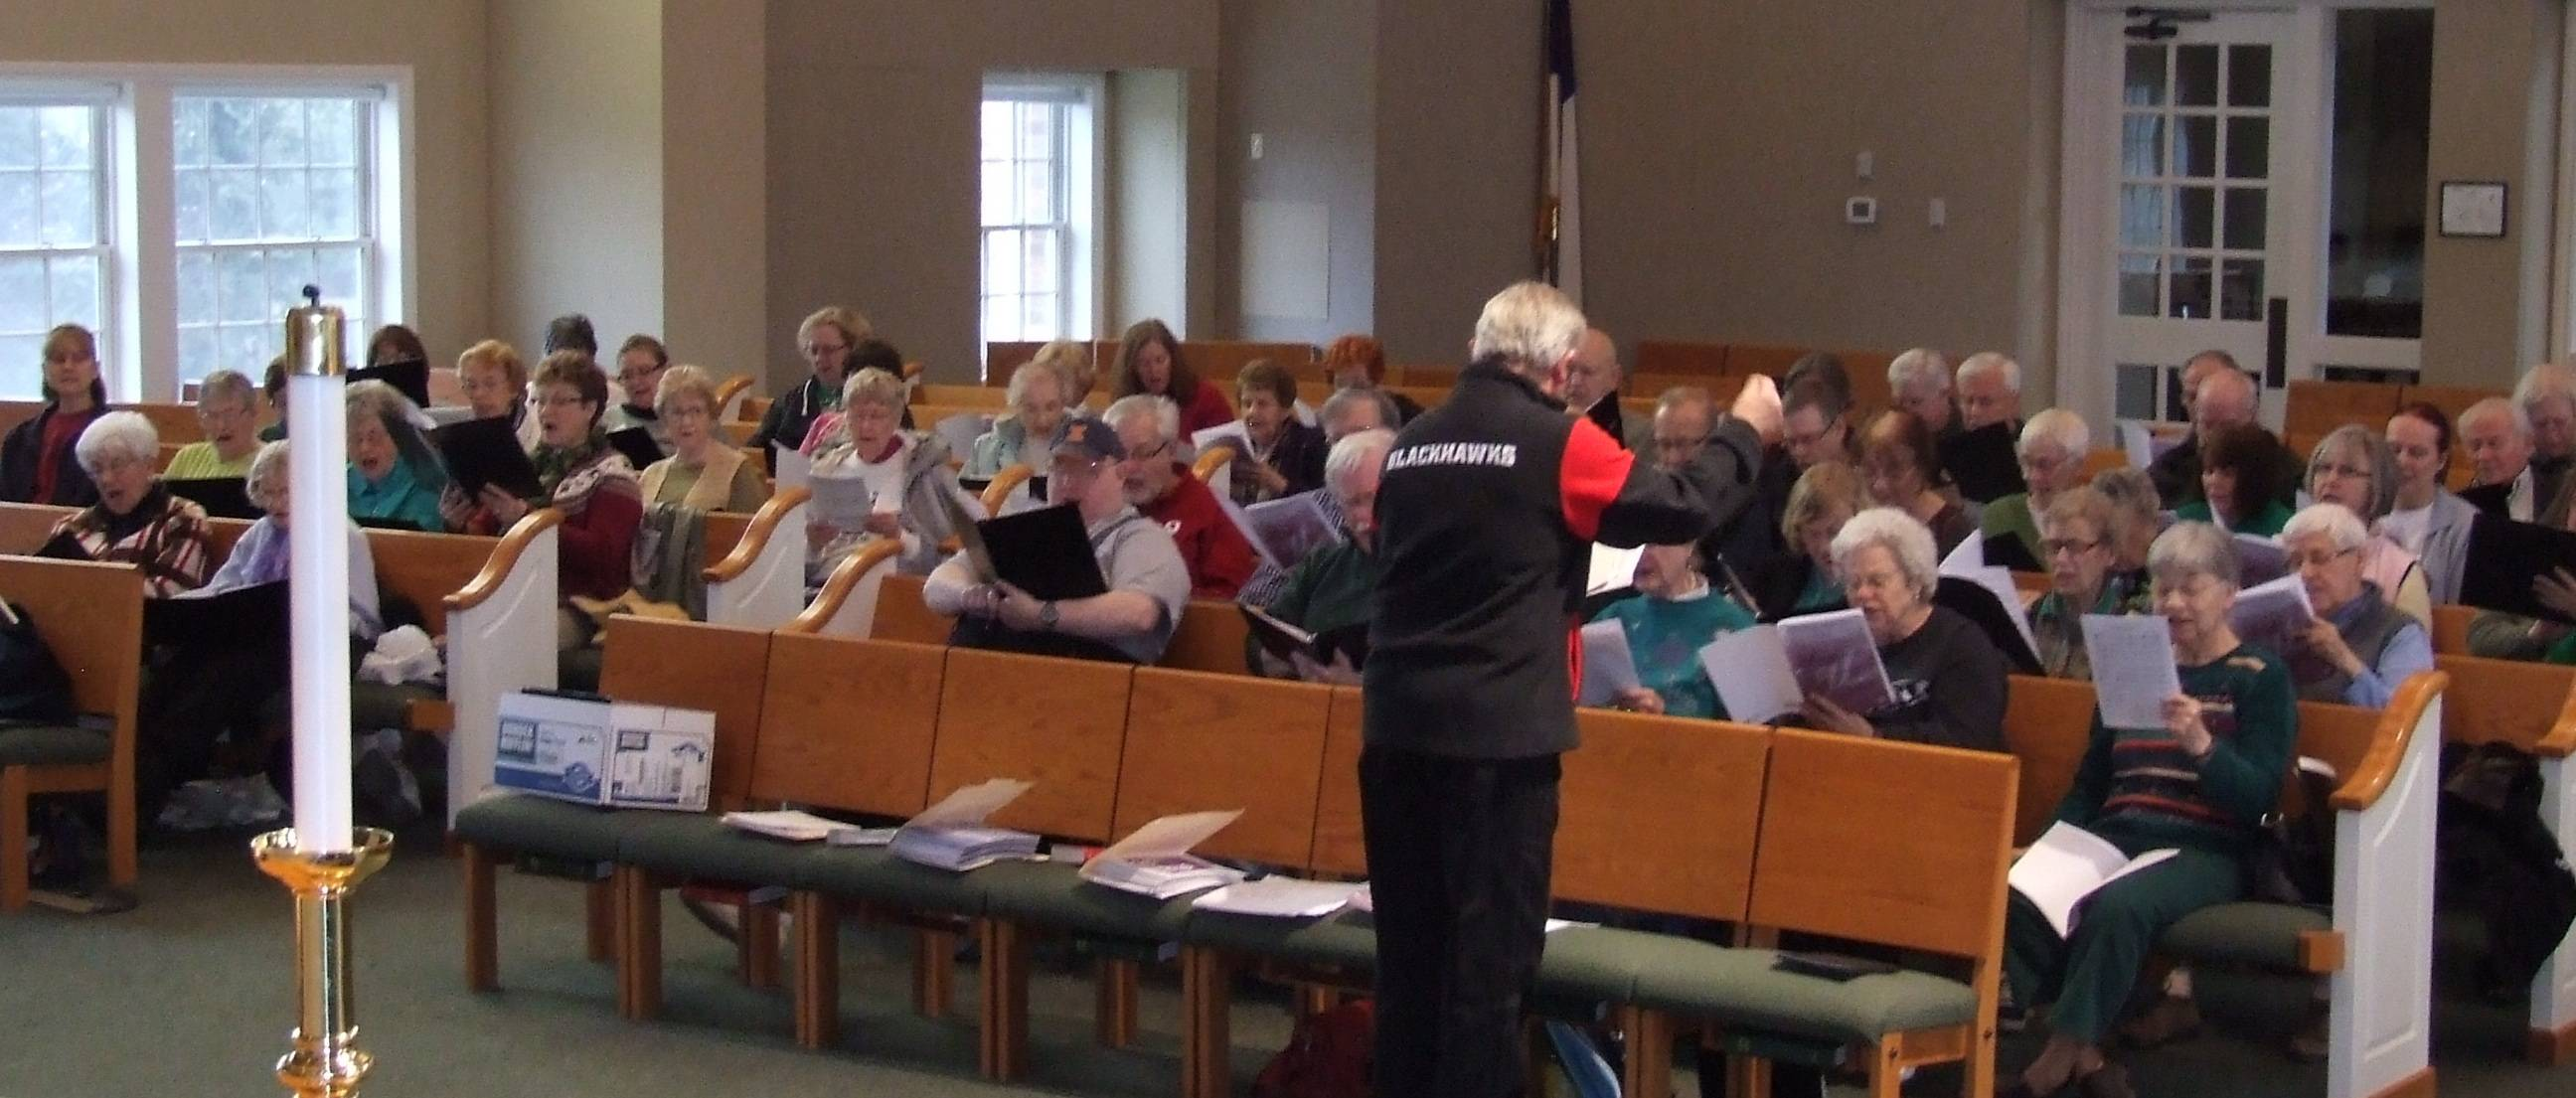 80 voice interfaith chorus from area churches prepares for annual Palm Sunday Concert.